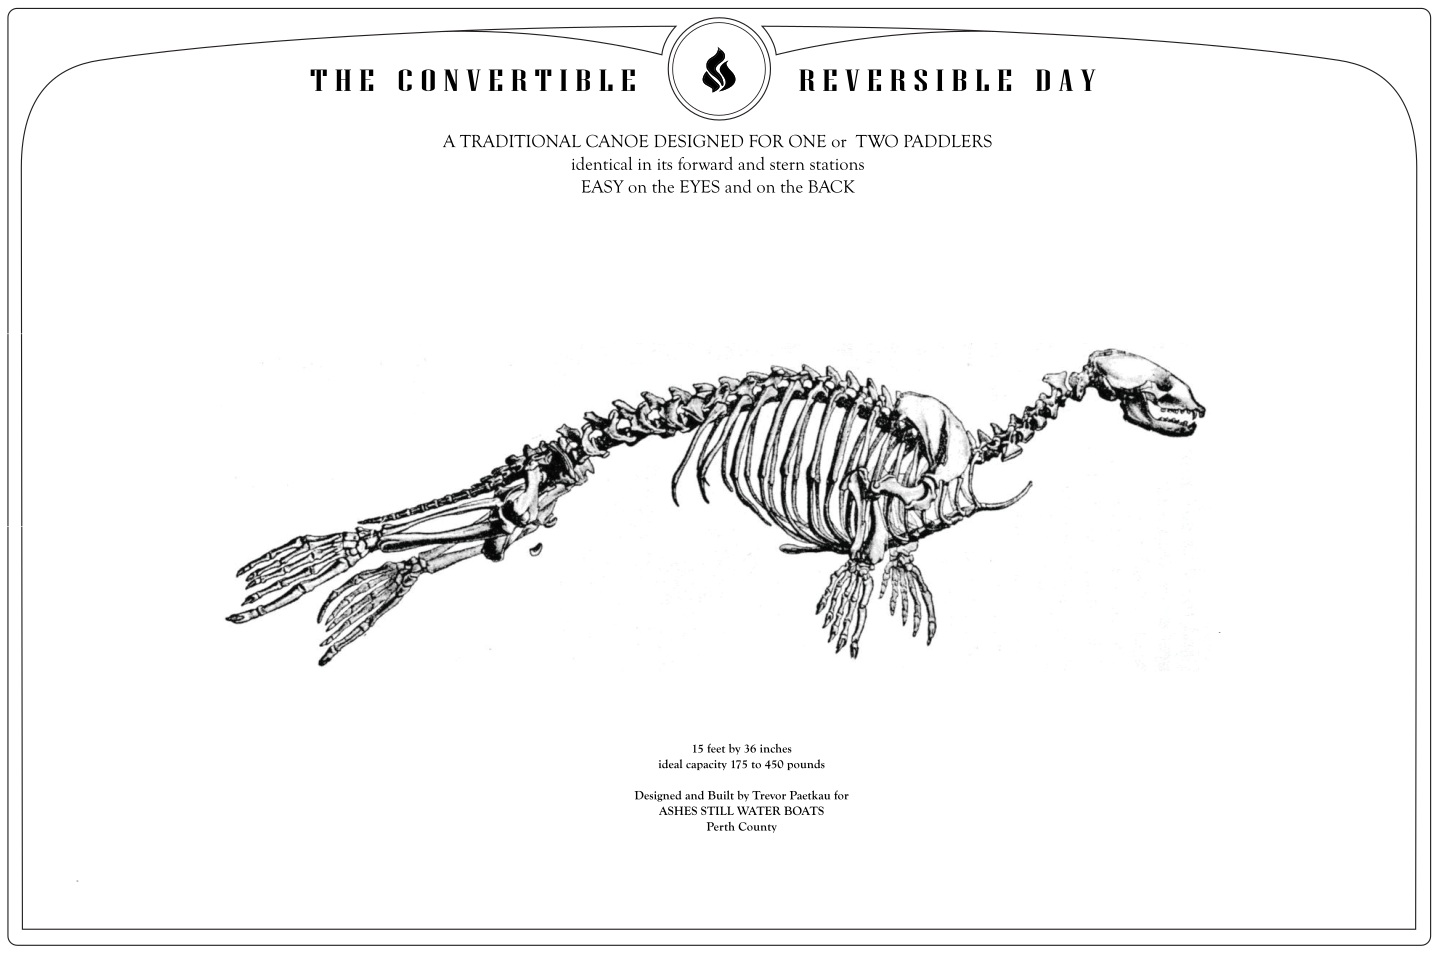 Reversible Day Cover